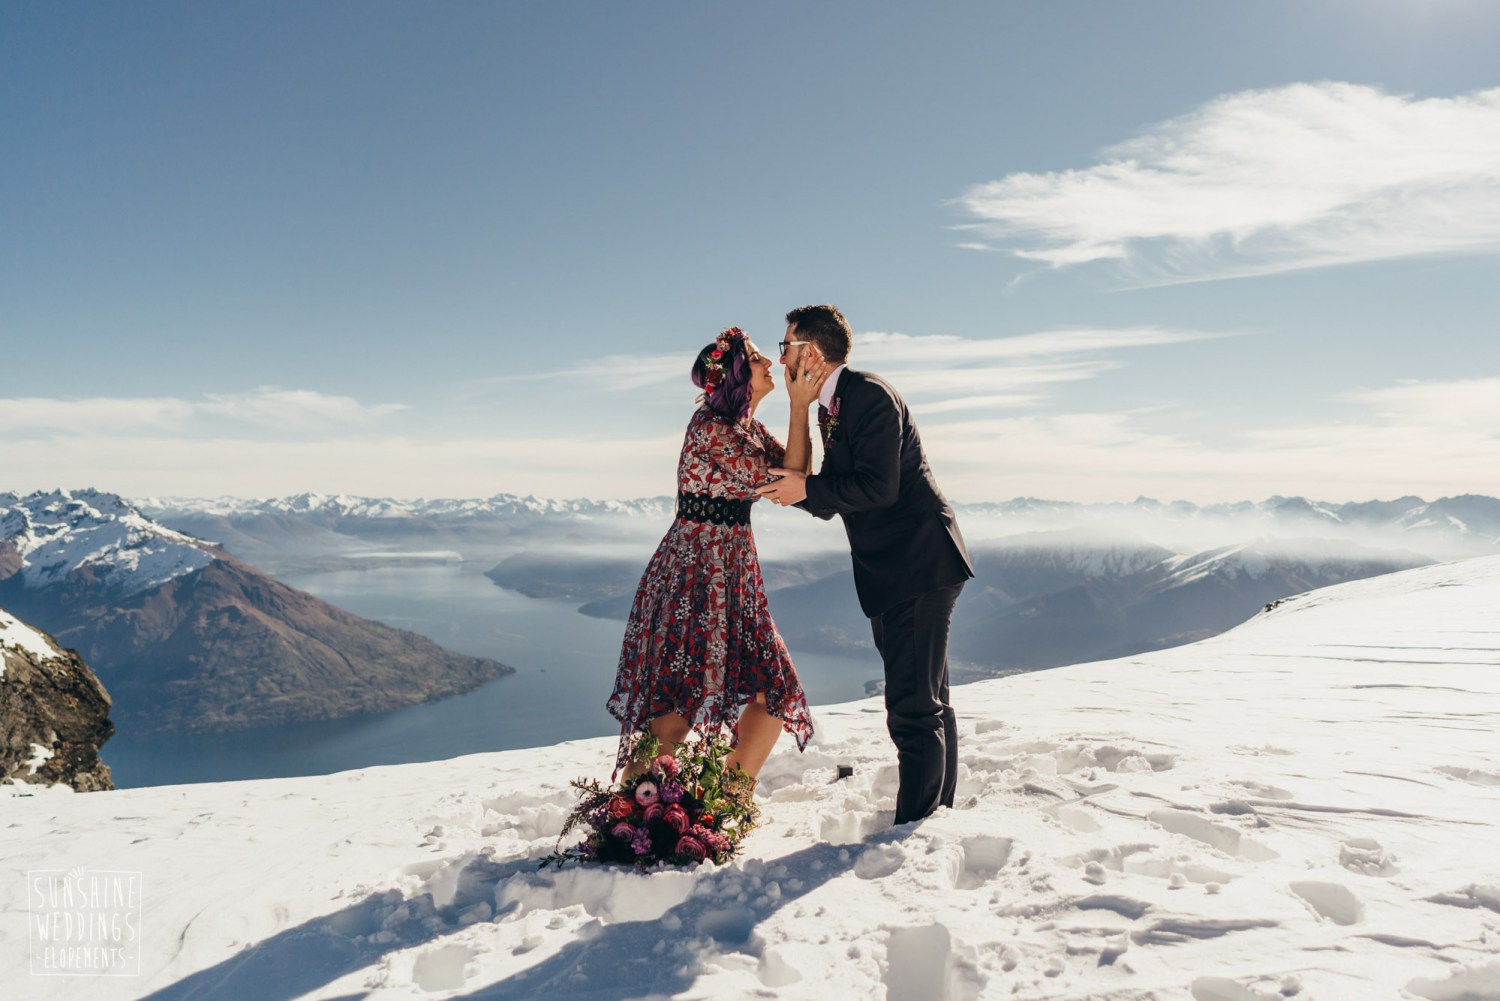 The Remarkables wedding, double cone, winter wedding, bride and groom in snow, spectacular mountain views in NZ